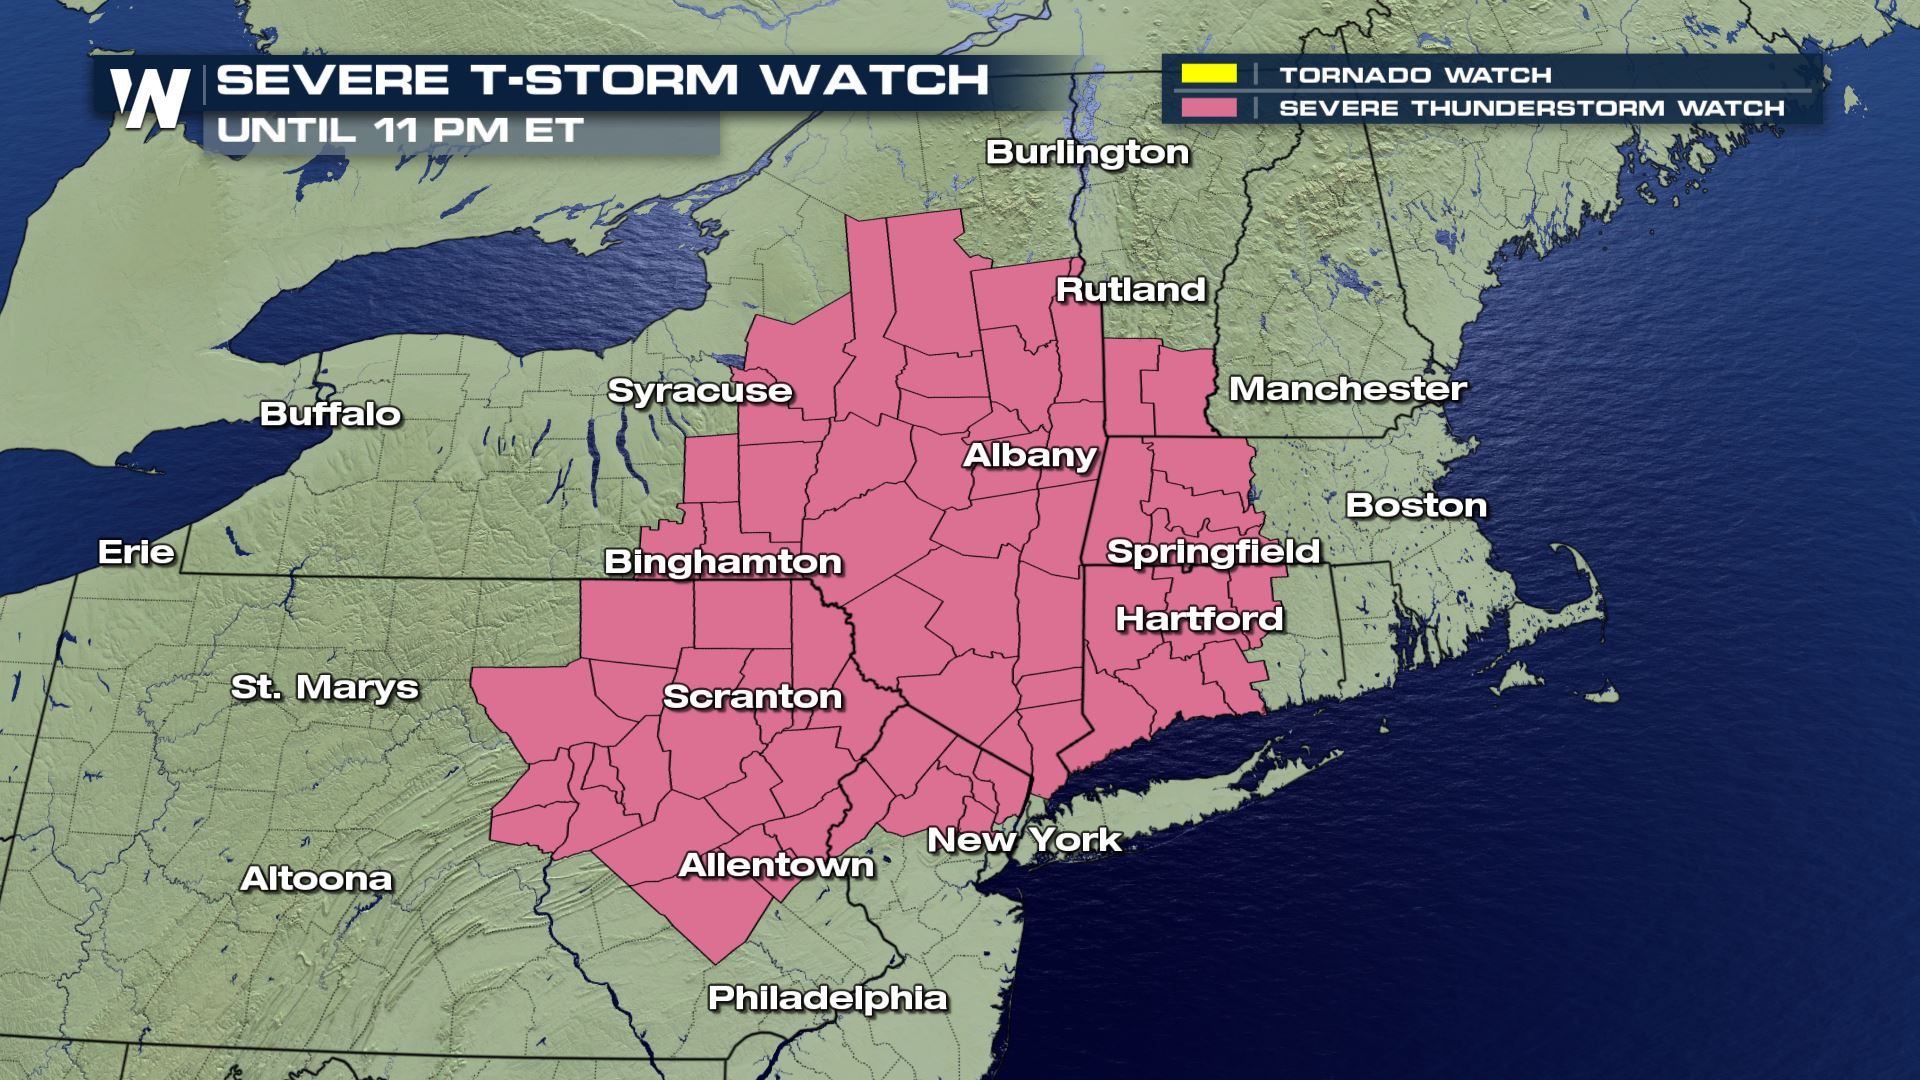 Severe Thunderstorm Watch Issued for the Northeast